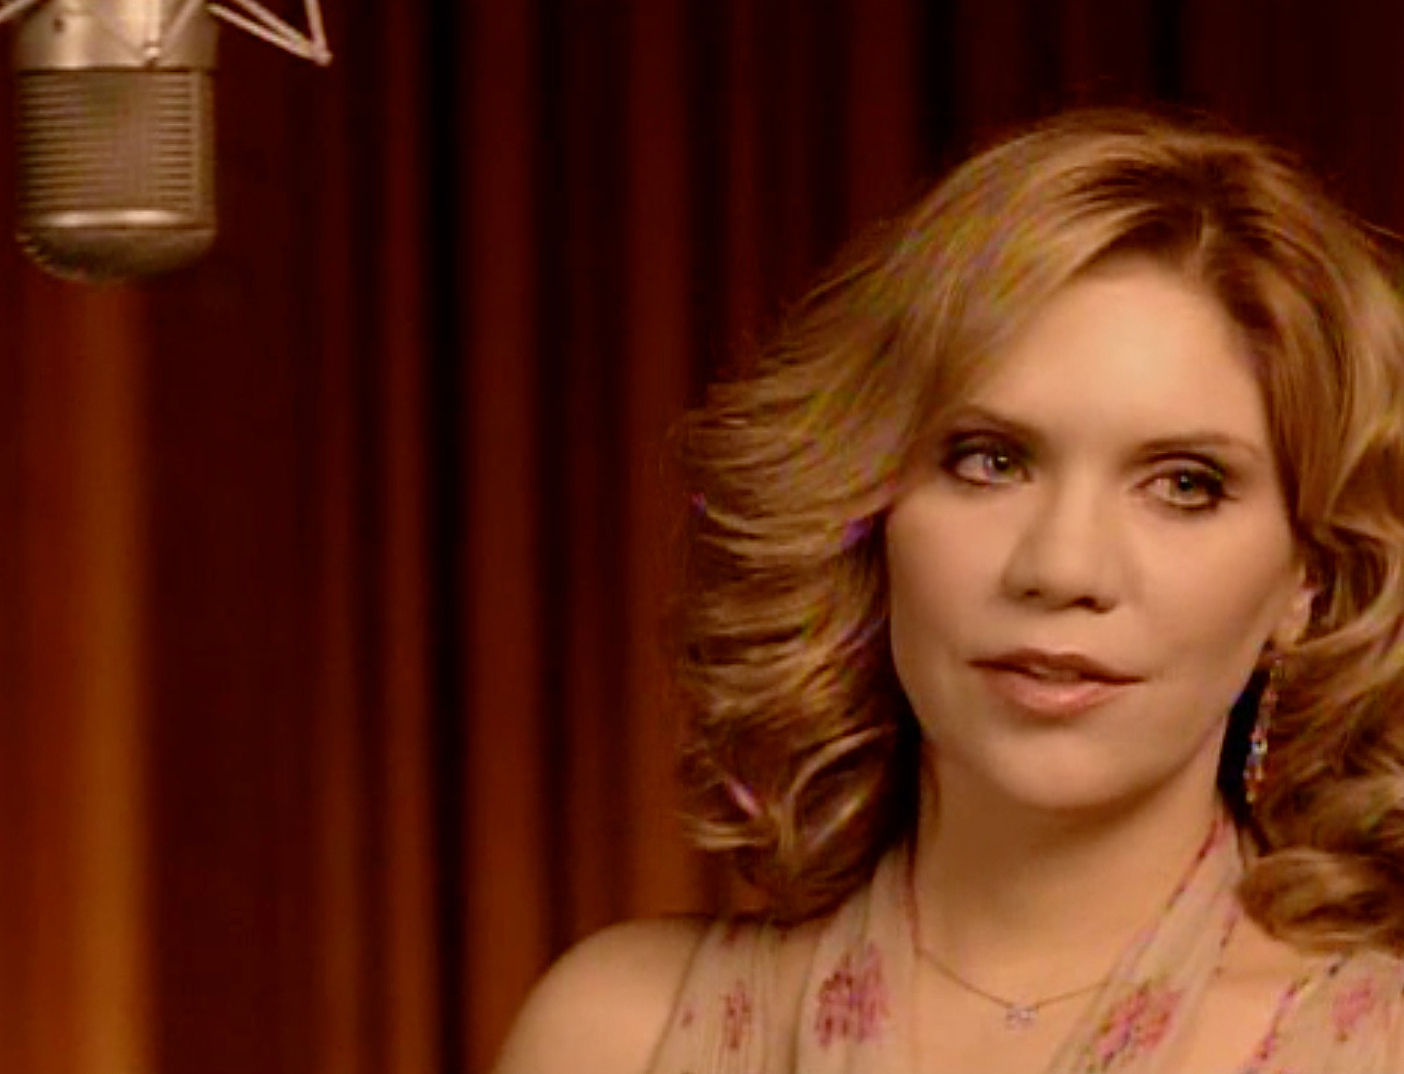 Alison Krauss directed by Rocky Schenck for Missing You music video with John Waite